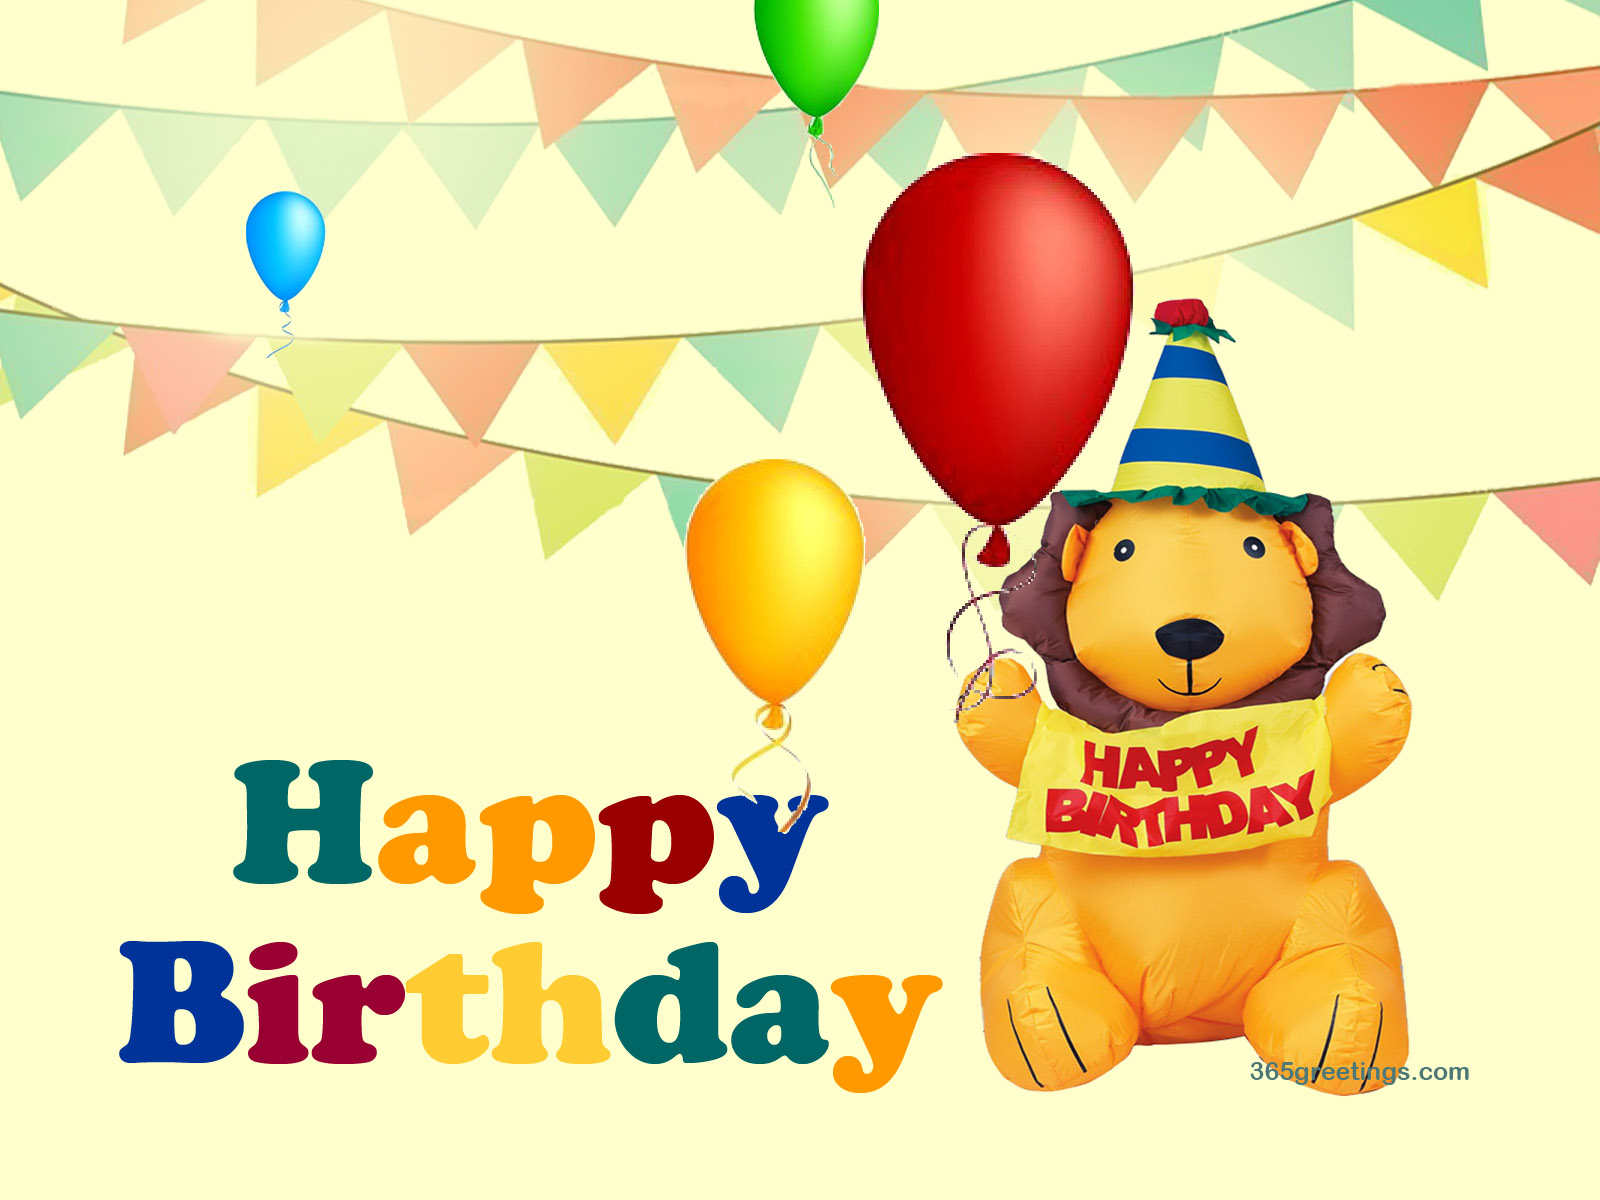 Cute Happy Birthday Wallpaper 41714 1920x1200 px